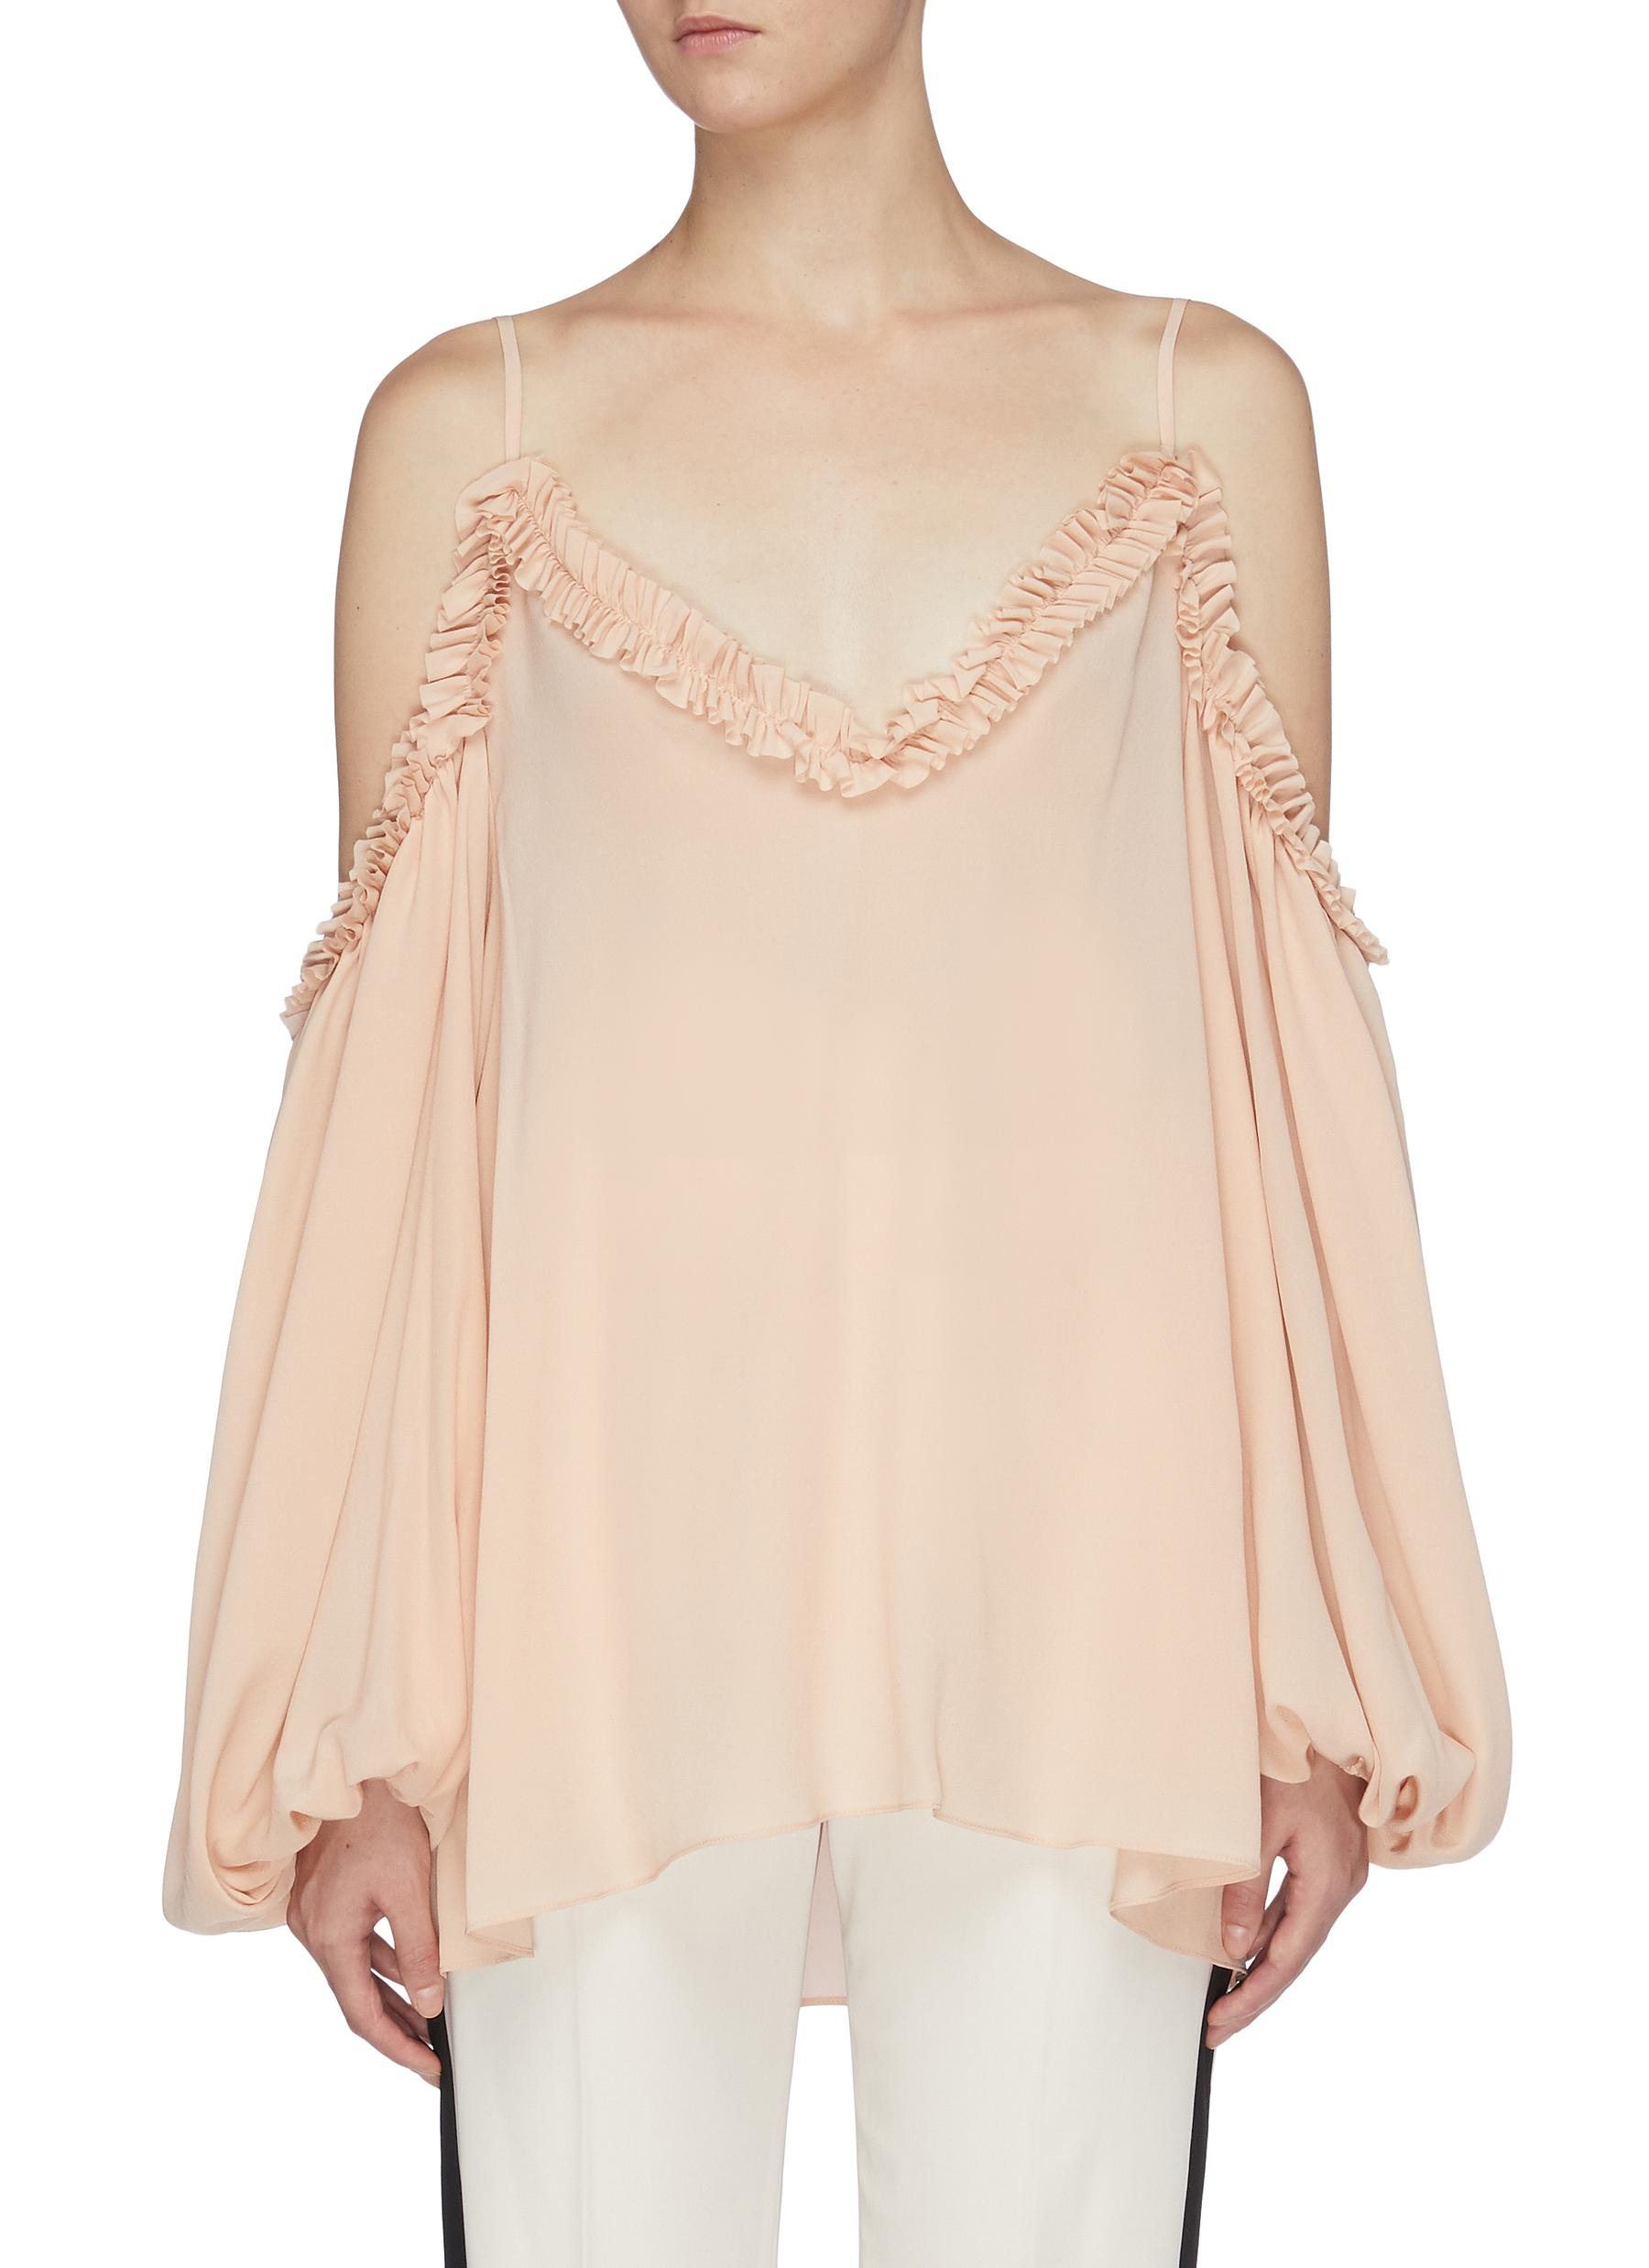 Ruffle puff sleeve cold-shoulder top by Stella Mccartney